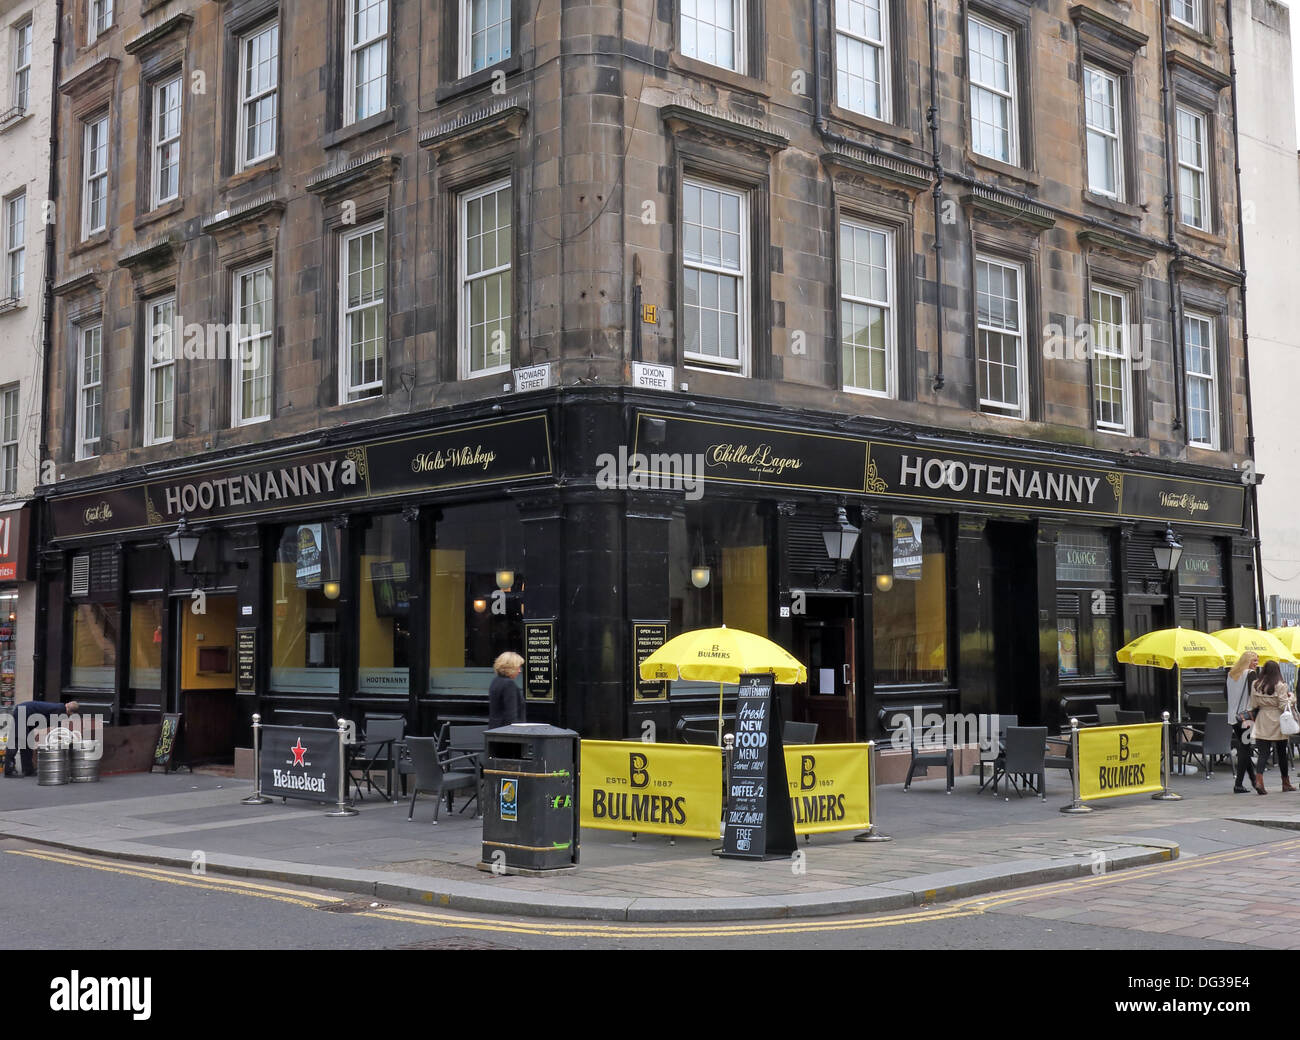 Bulmers,beer,drinking,alcohol,40 Howard St,Glasgow,Glasgow City G1 4EE,Scotland,Scots,Hootenanny,pub,boozer,Howard,Street,city,centre,outside,exterior,seats,seating,cider,lager,traditional,Scottish,bars,pubs,old,building,tenement,food,drink,GoTonySmith